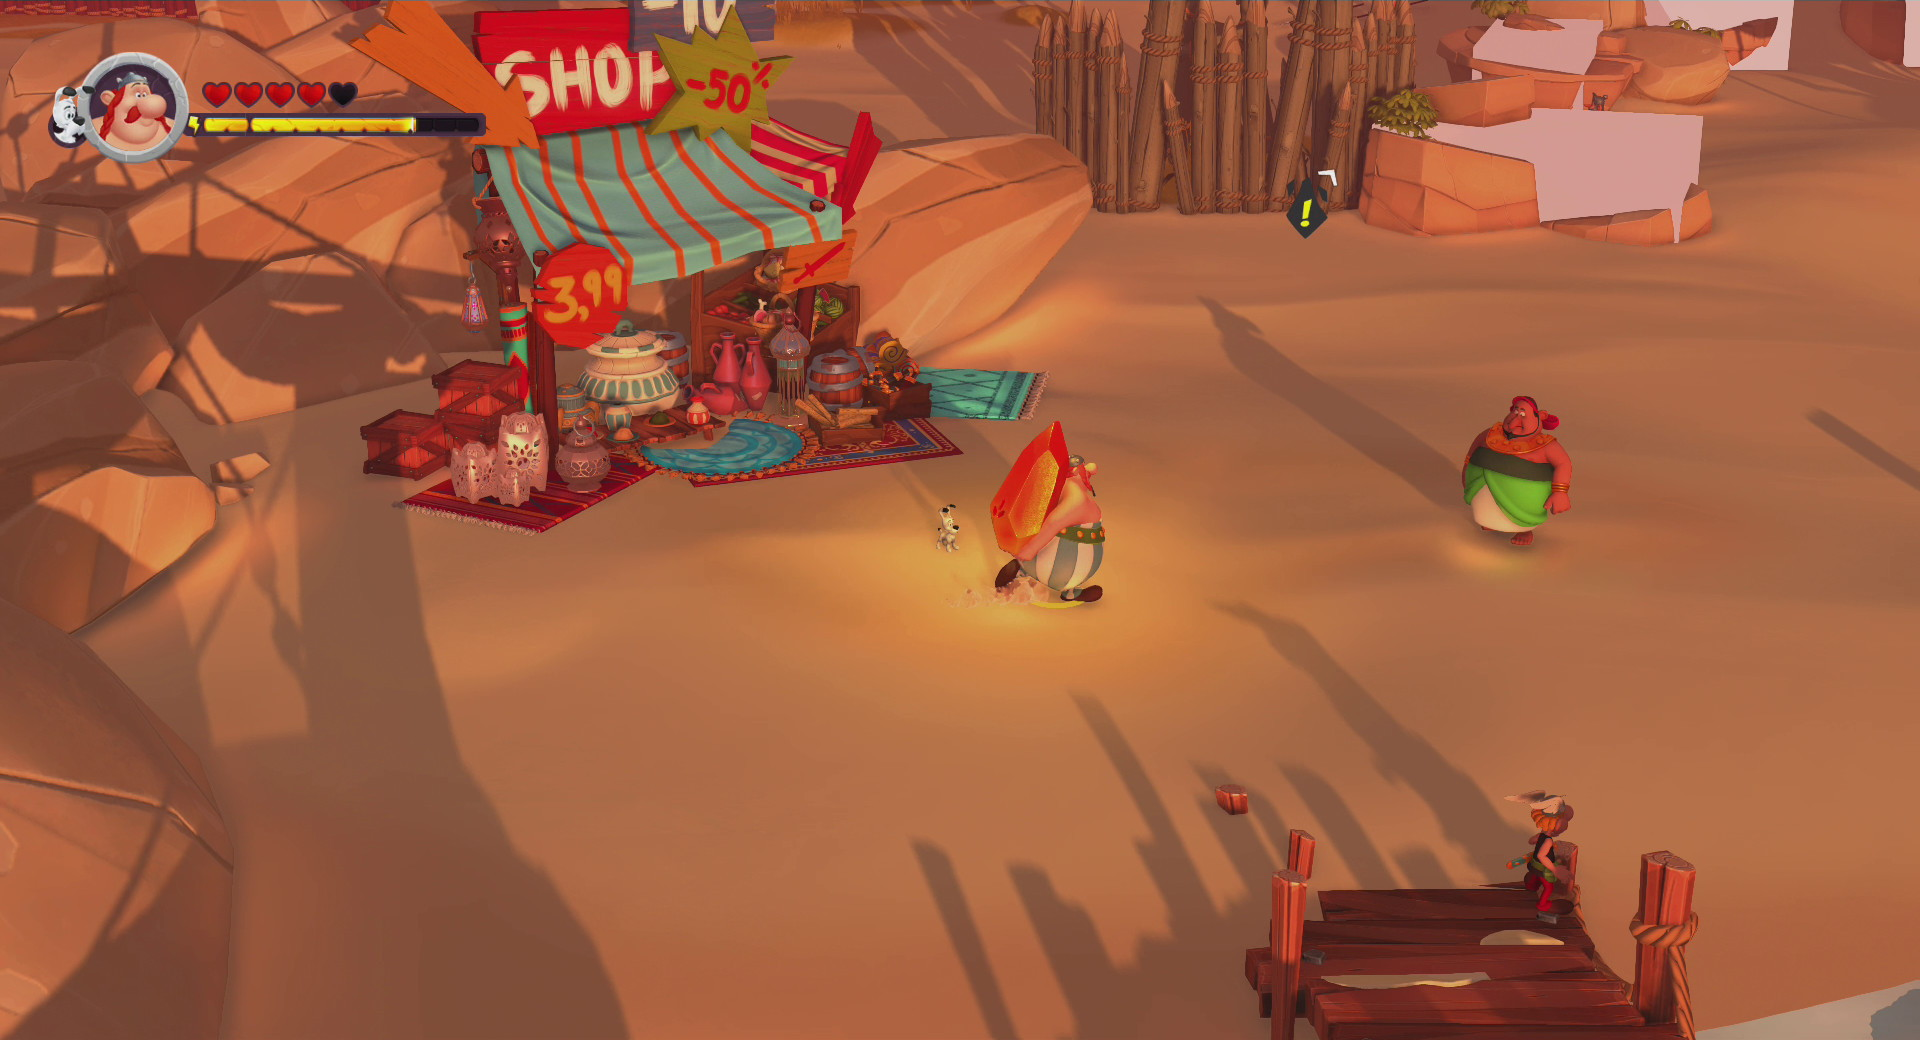 Asterix & Obelix XXL 3: The Crystal Menhir - screenshot 6